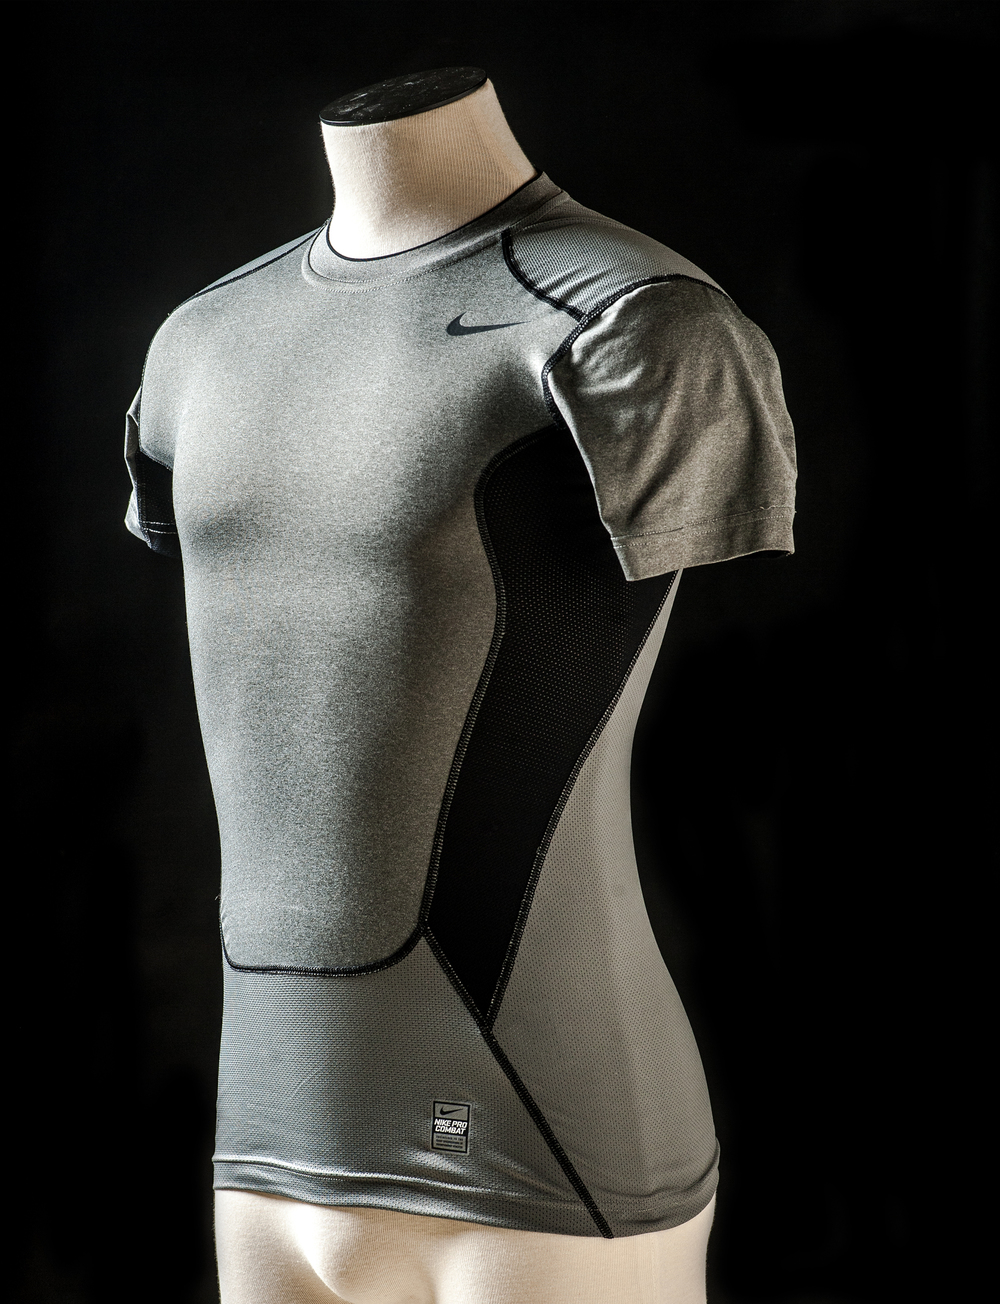 "<alt=""Jusphotography commcerical Photography Nike Sports Shirt"" >"